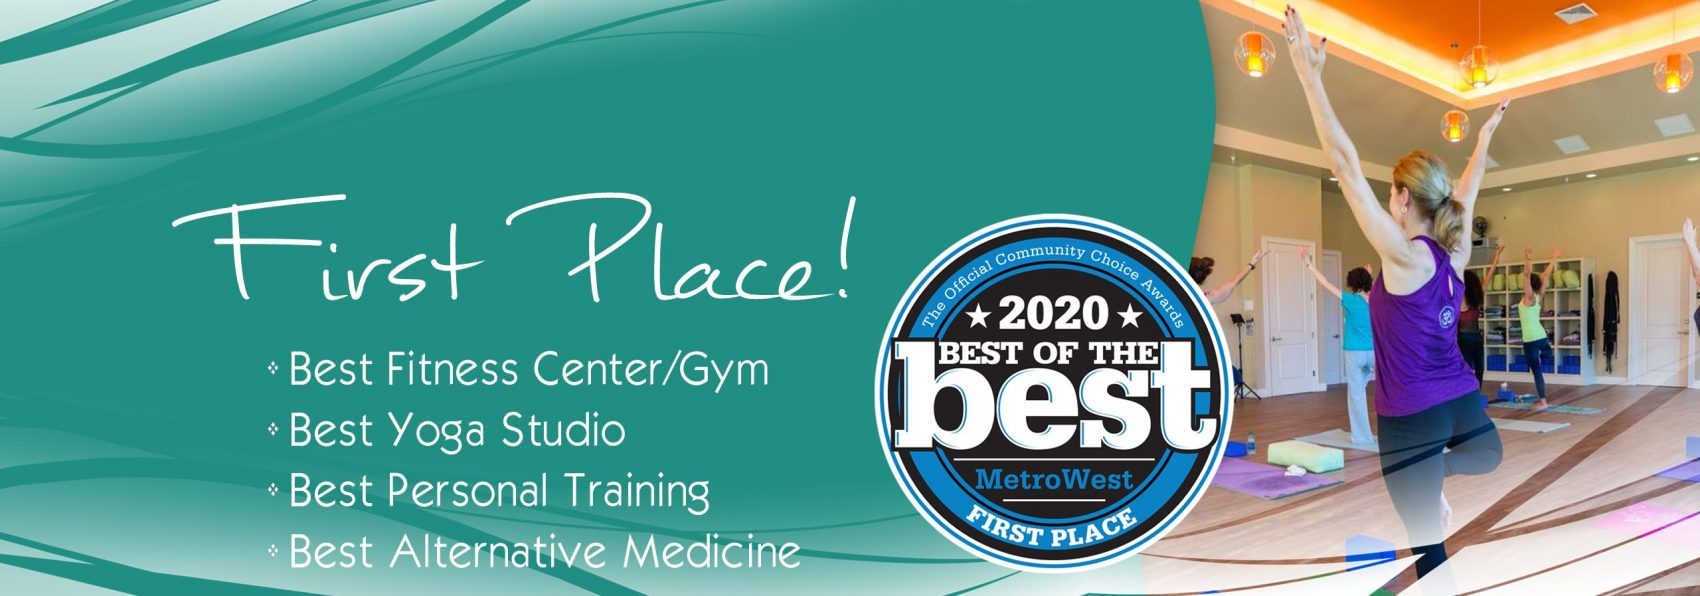 We took First Place! Best Fitness Center | Best Yoga Studio | Best Personal Training | Best Alternative Medicine